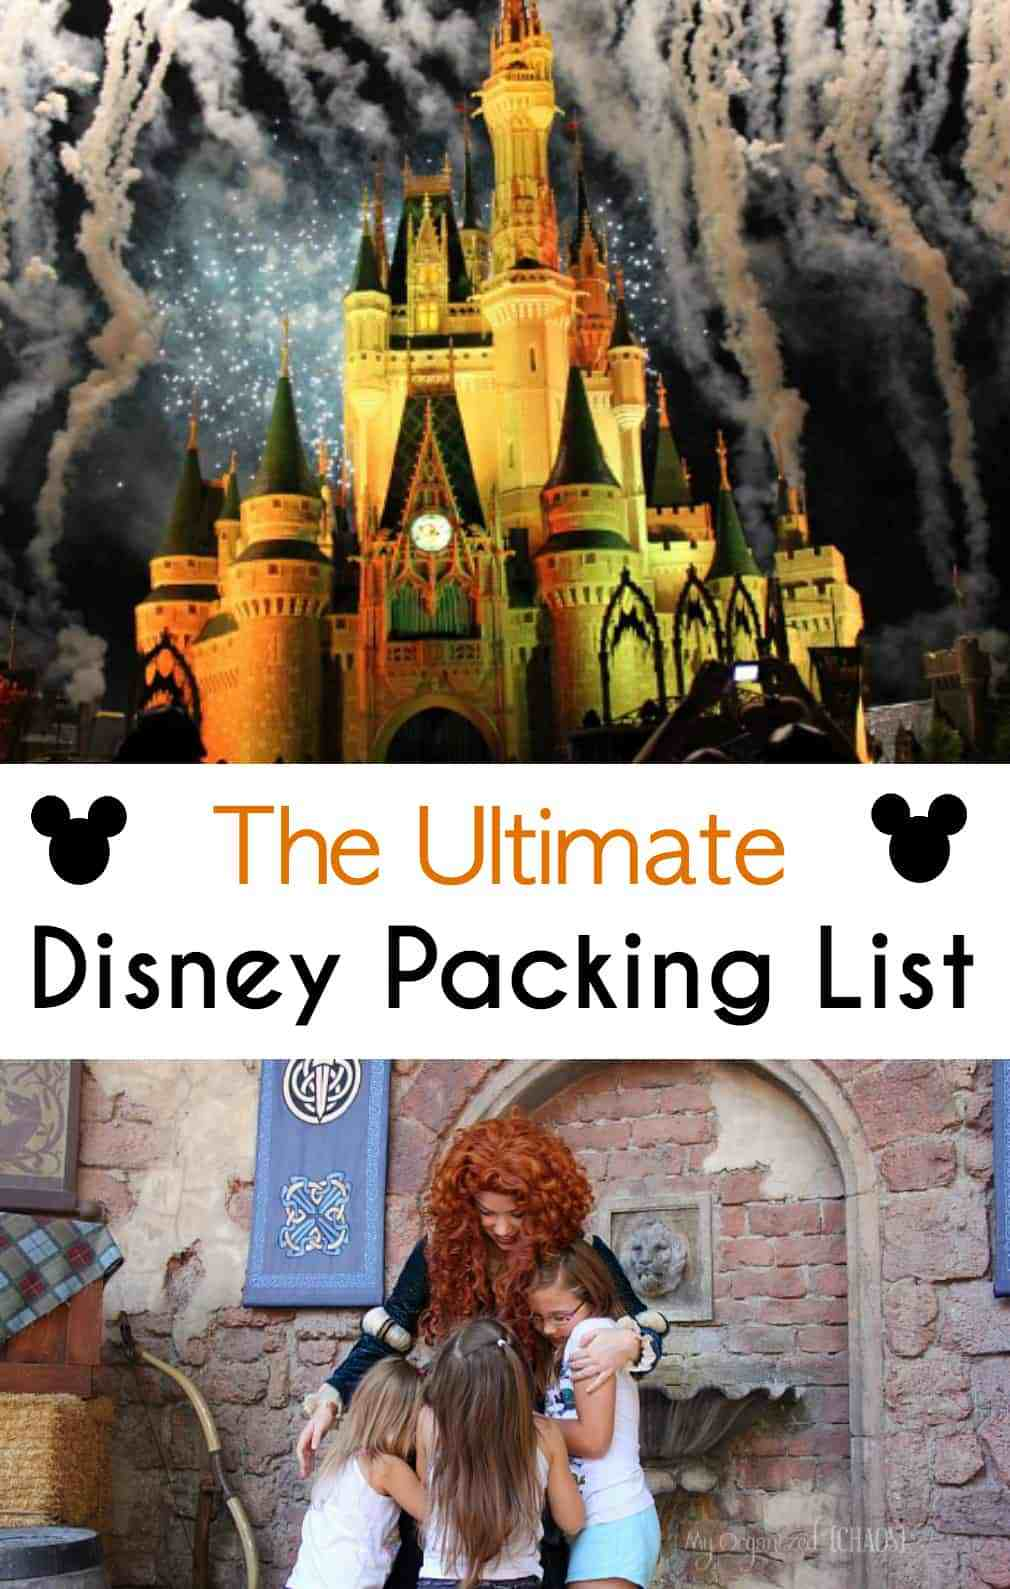 the ultimate disney packing list pinterest image